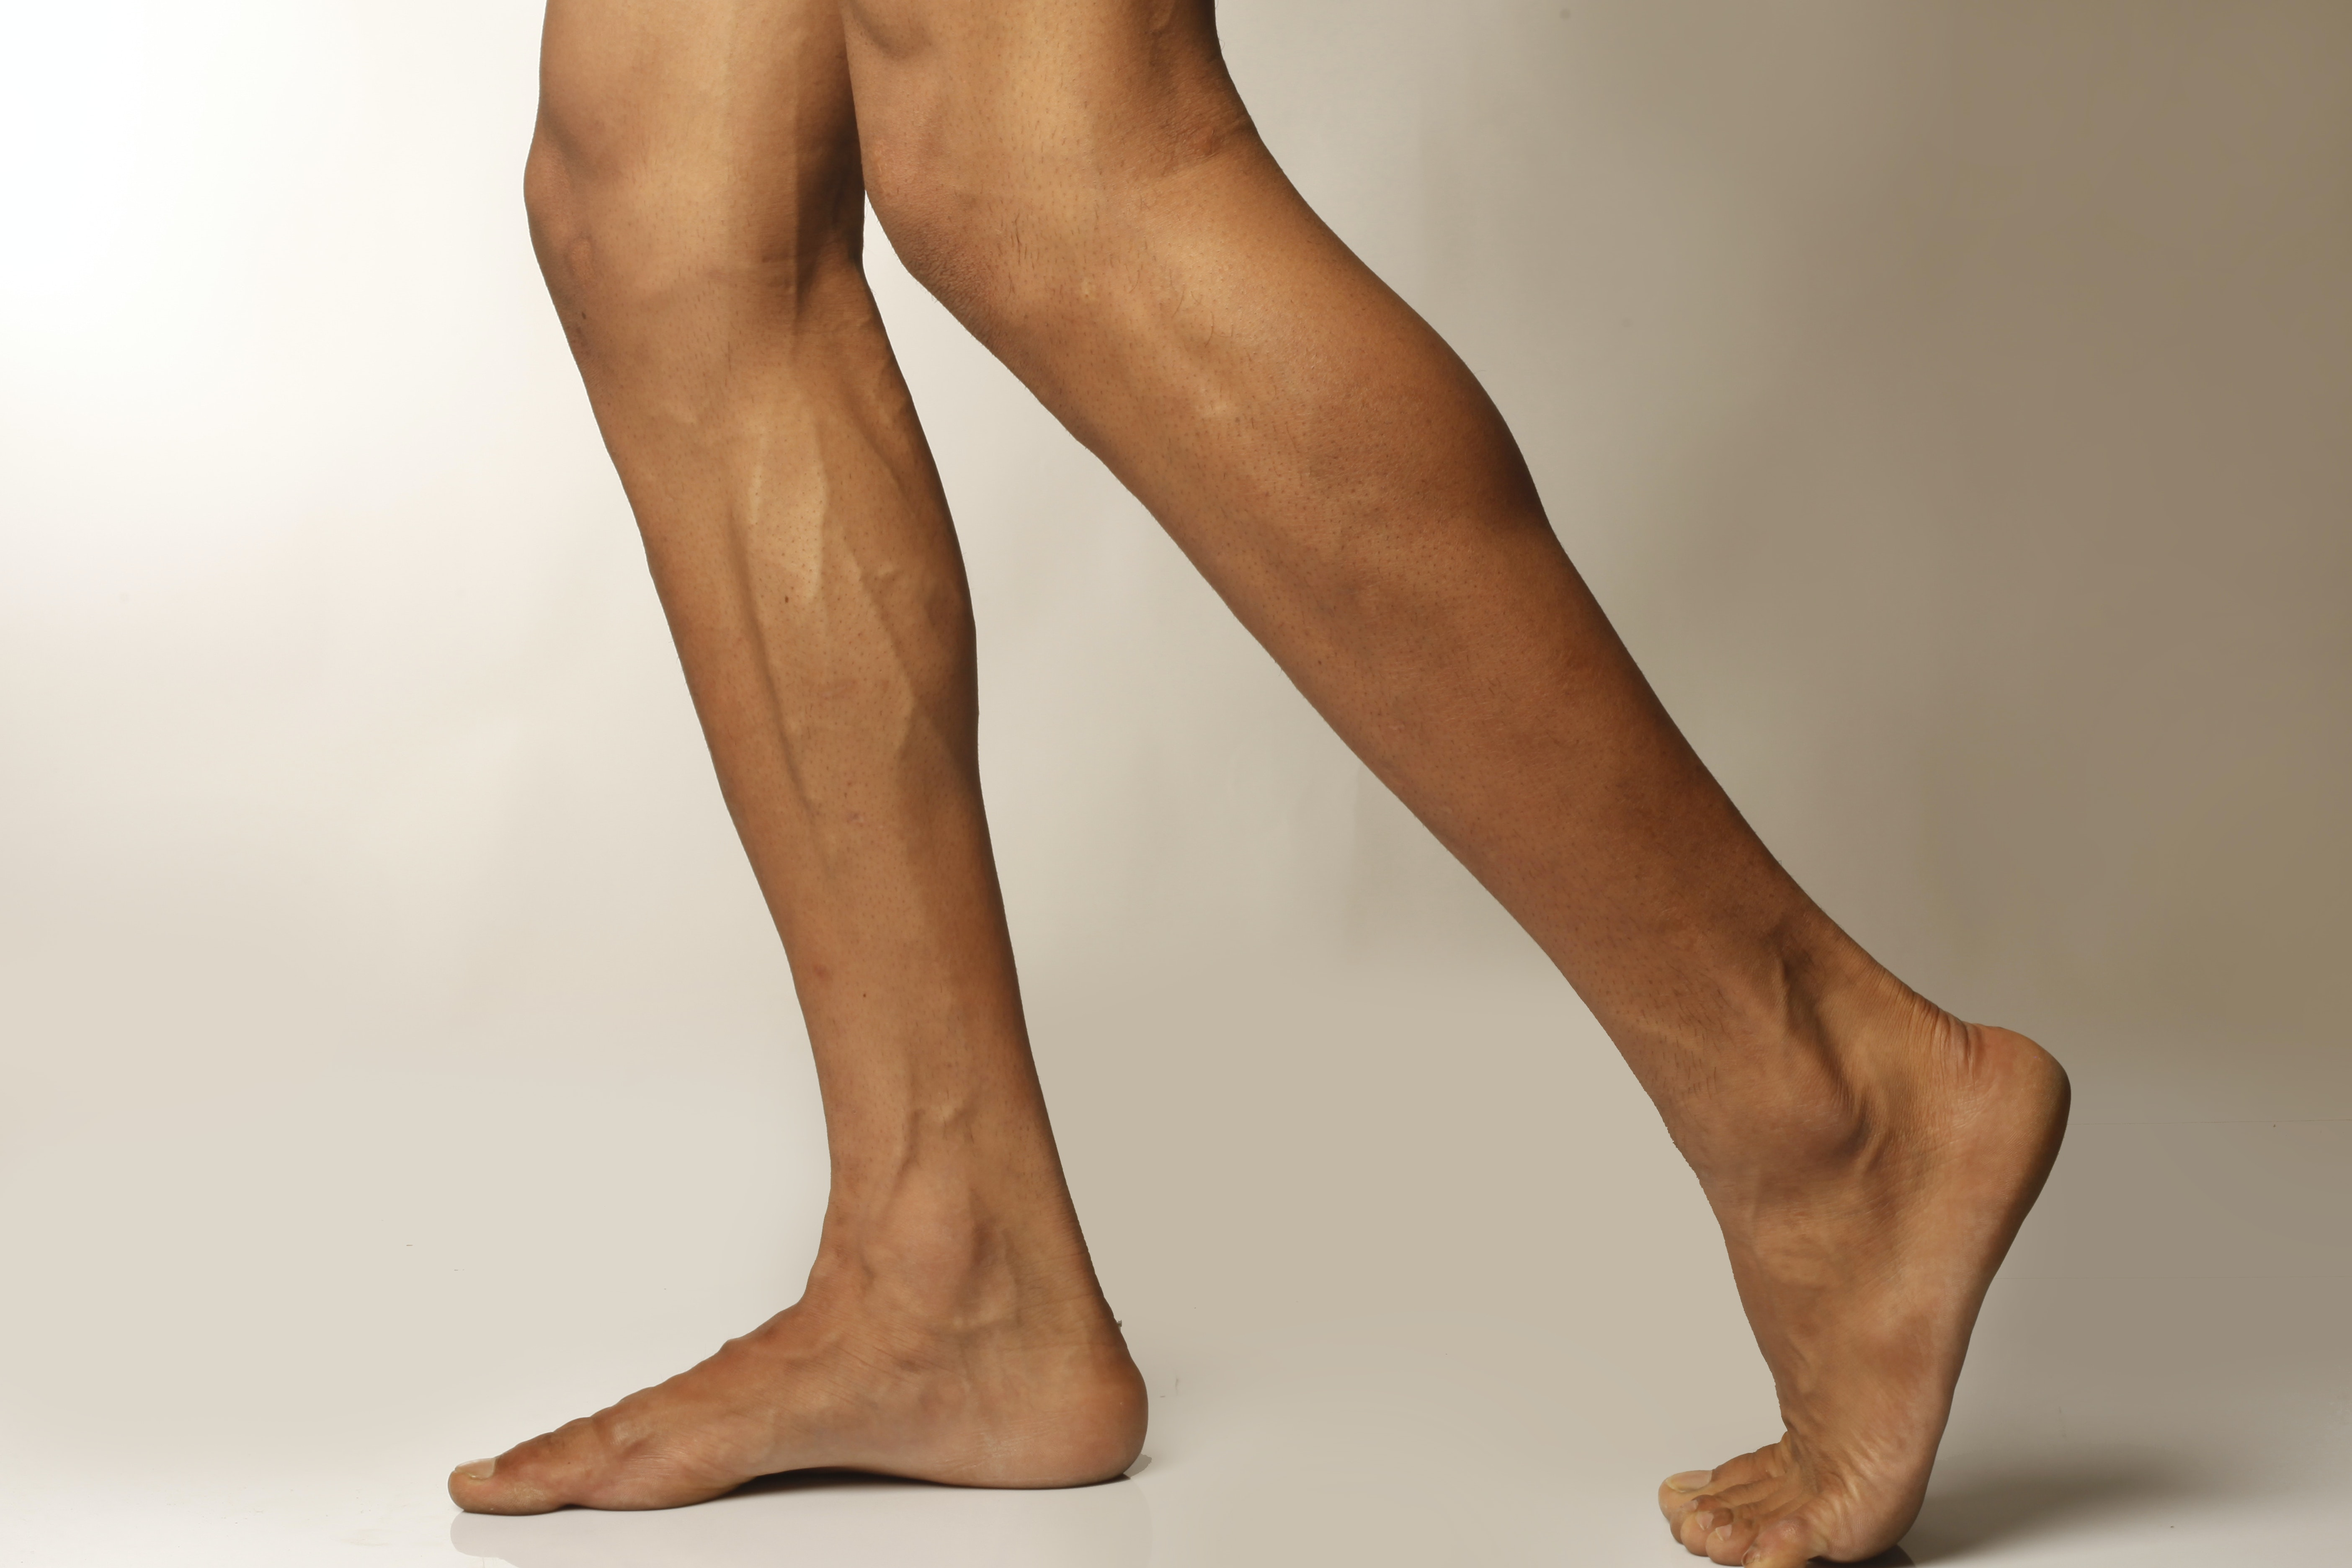 An image depicting a person suffering from weakness in one lower leg symptoms